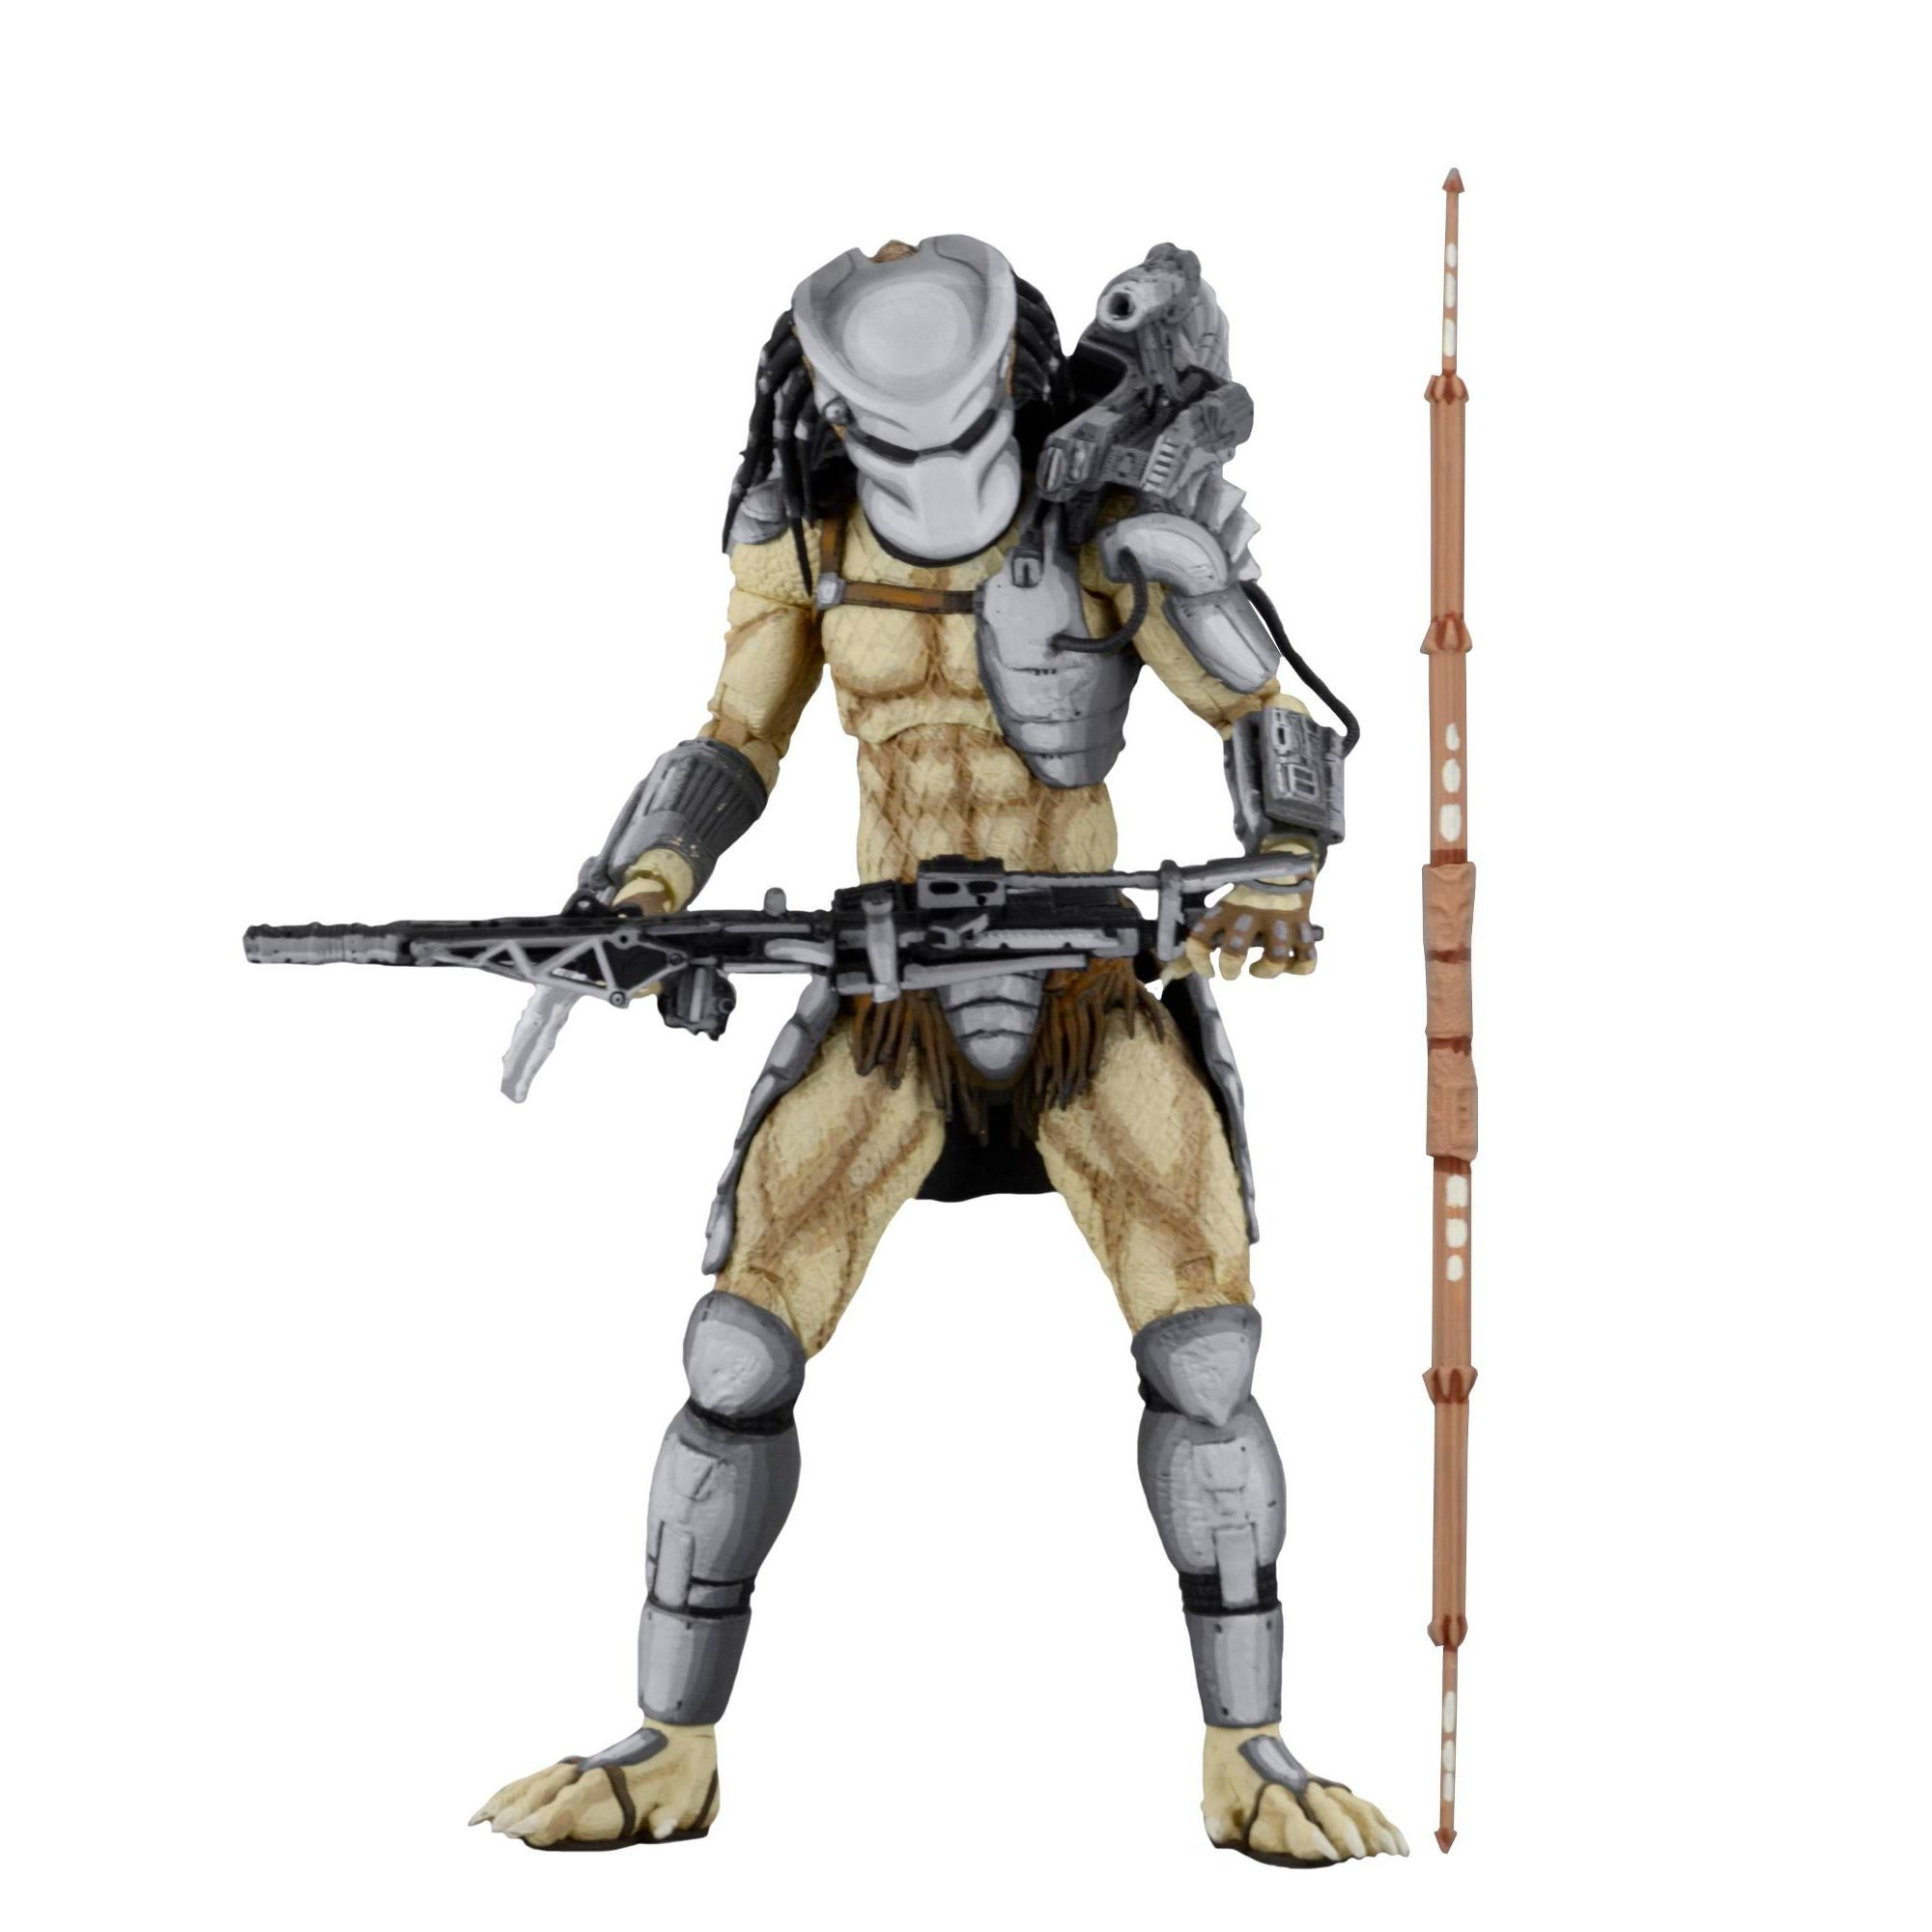 NECA Aliens Vs Predator Arcade Appearance Figure - Warrior Predator, 7""